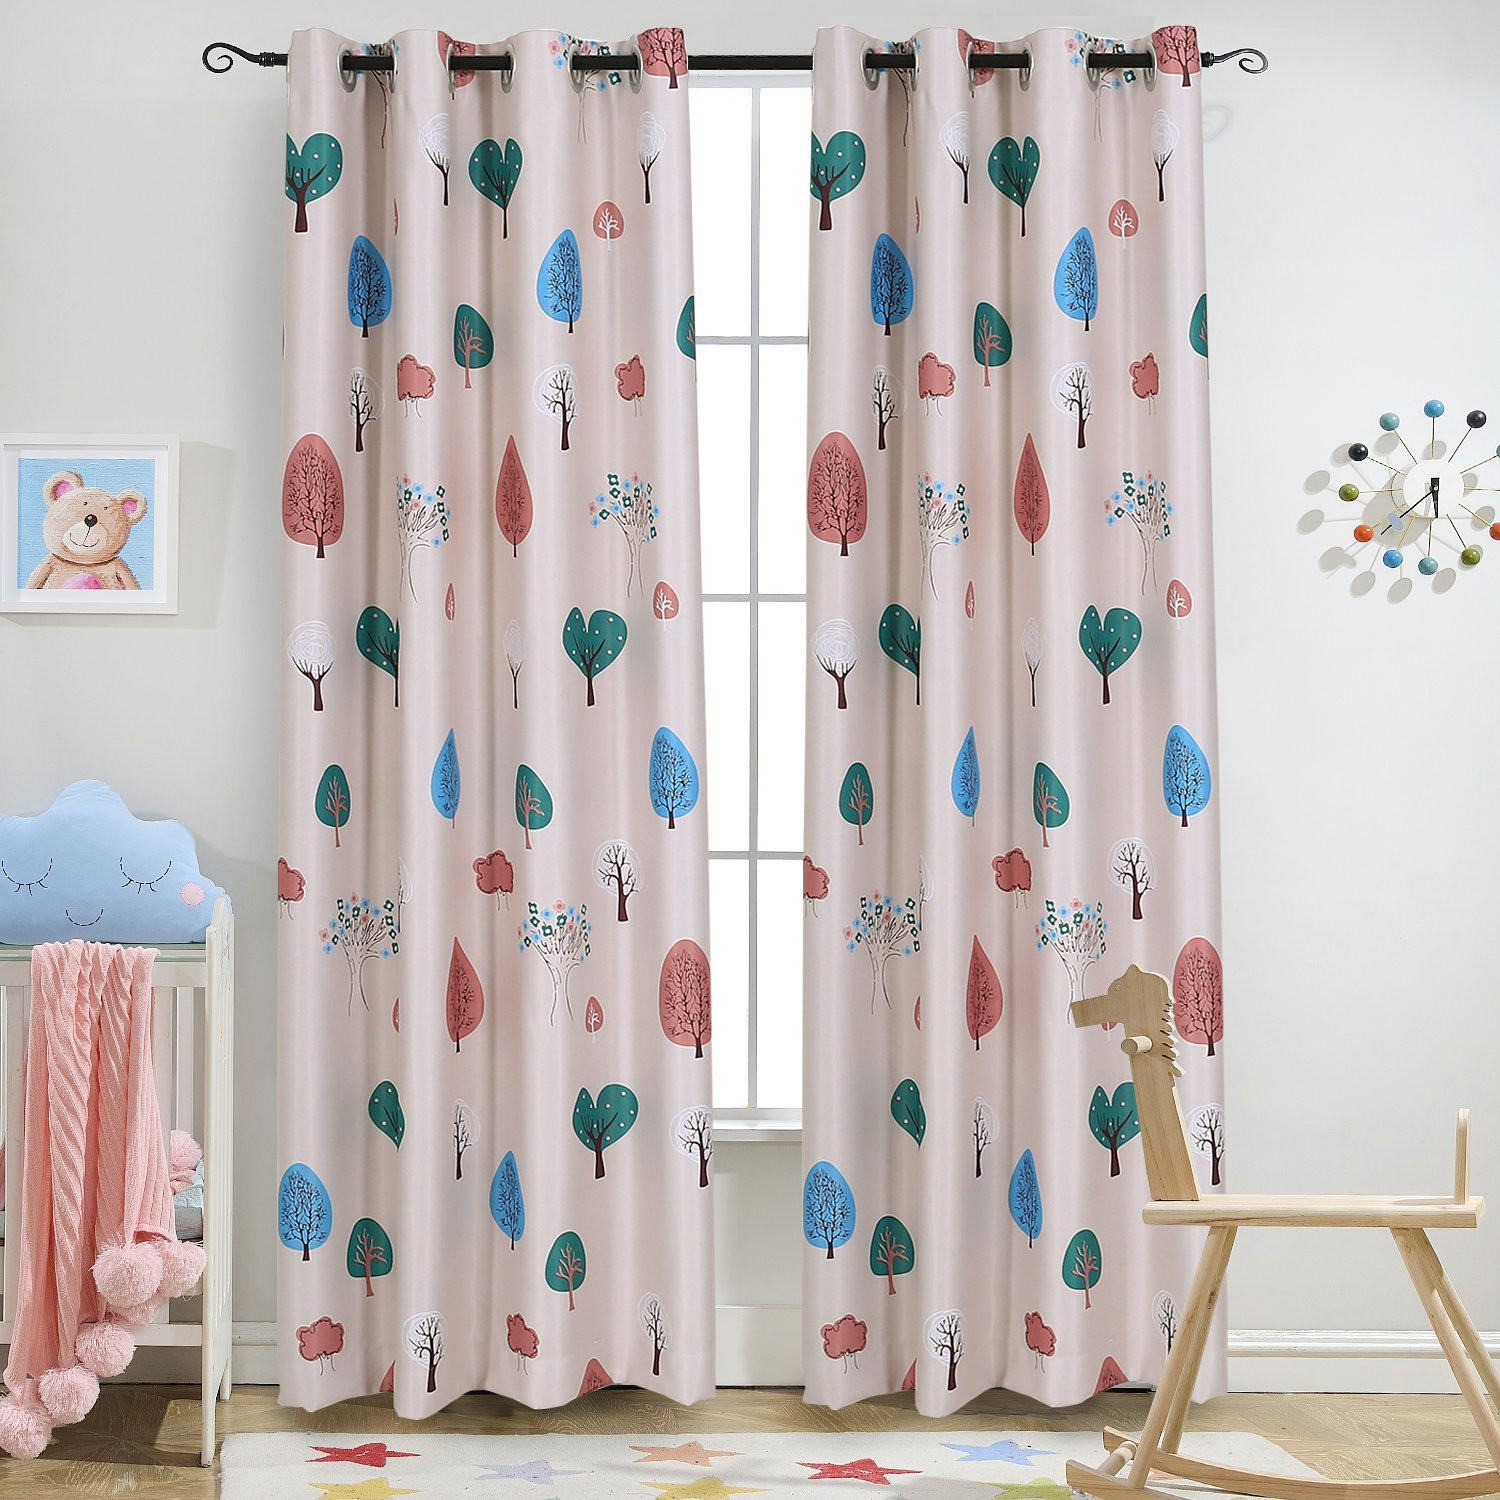 Best ideas about Kids Room Curtains Ideas . Save or Pin Kids Room Machine Washable Dark Blue Printed Curtain For Now.